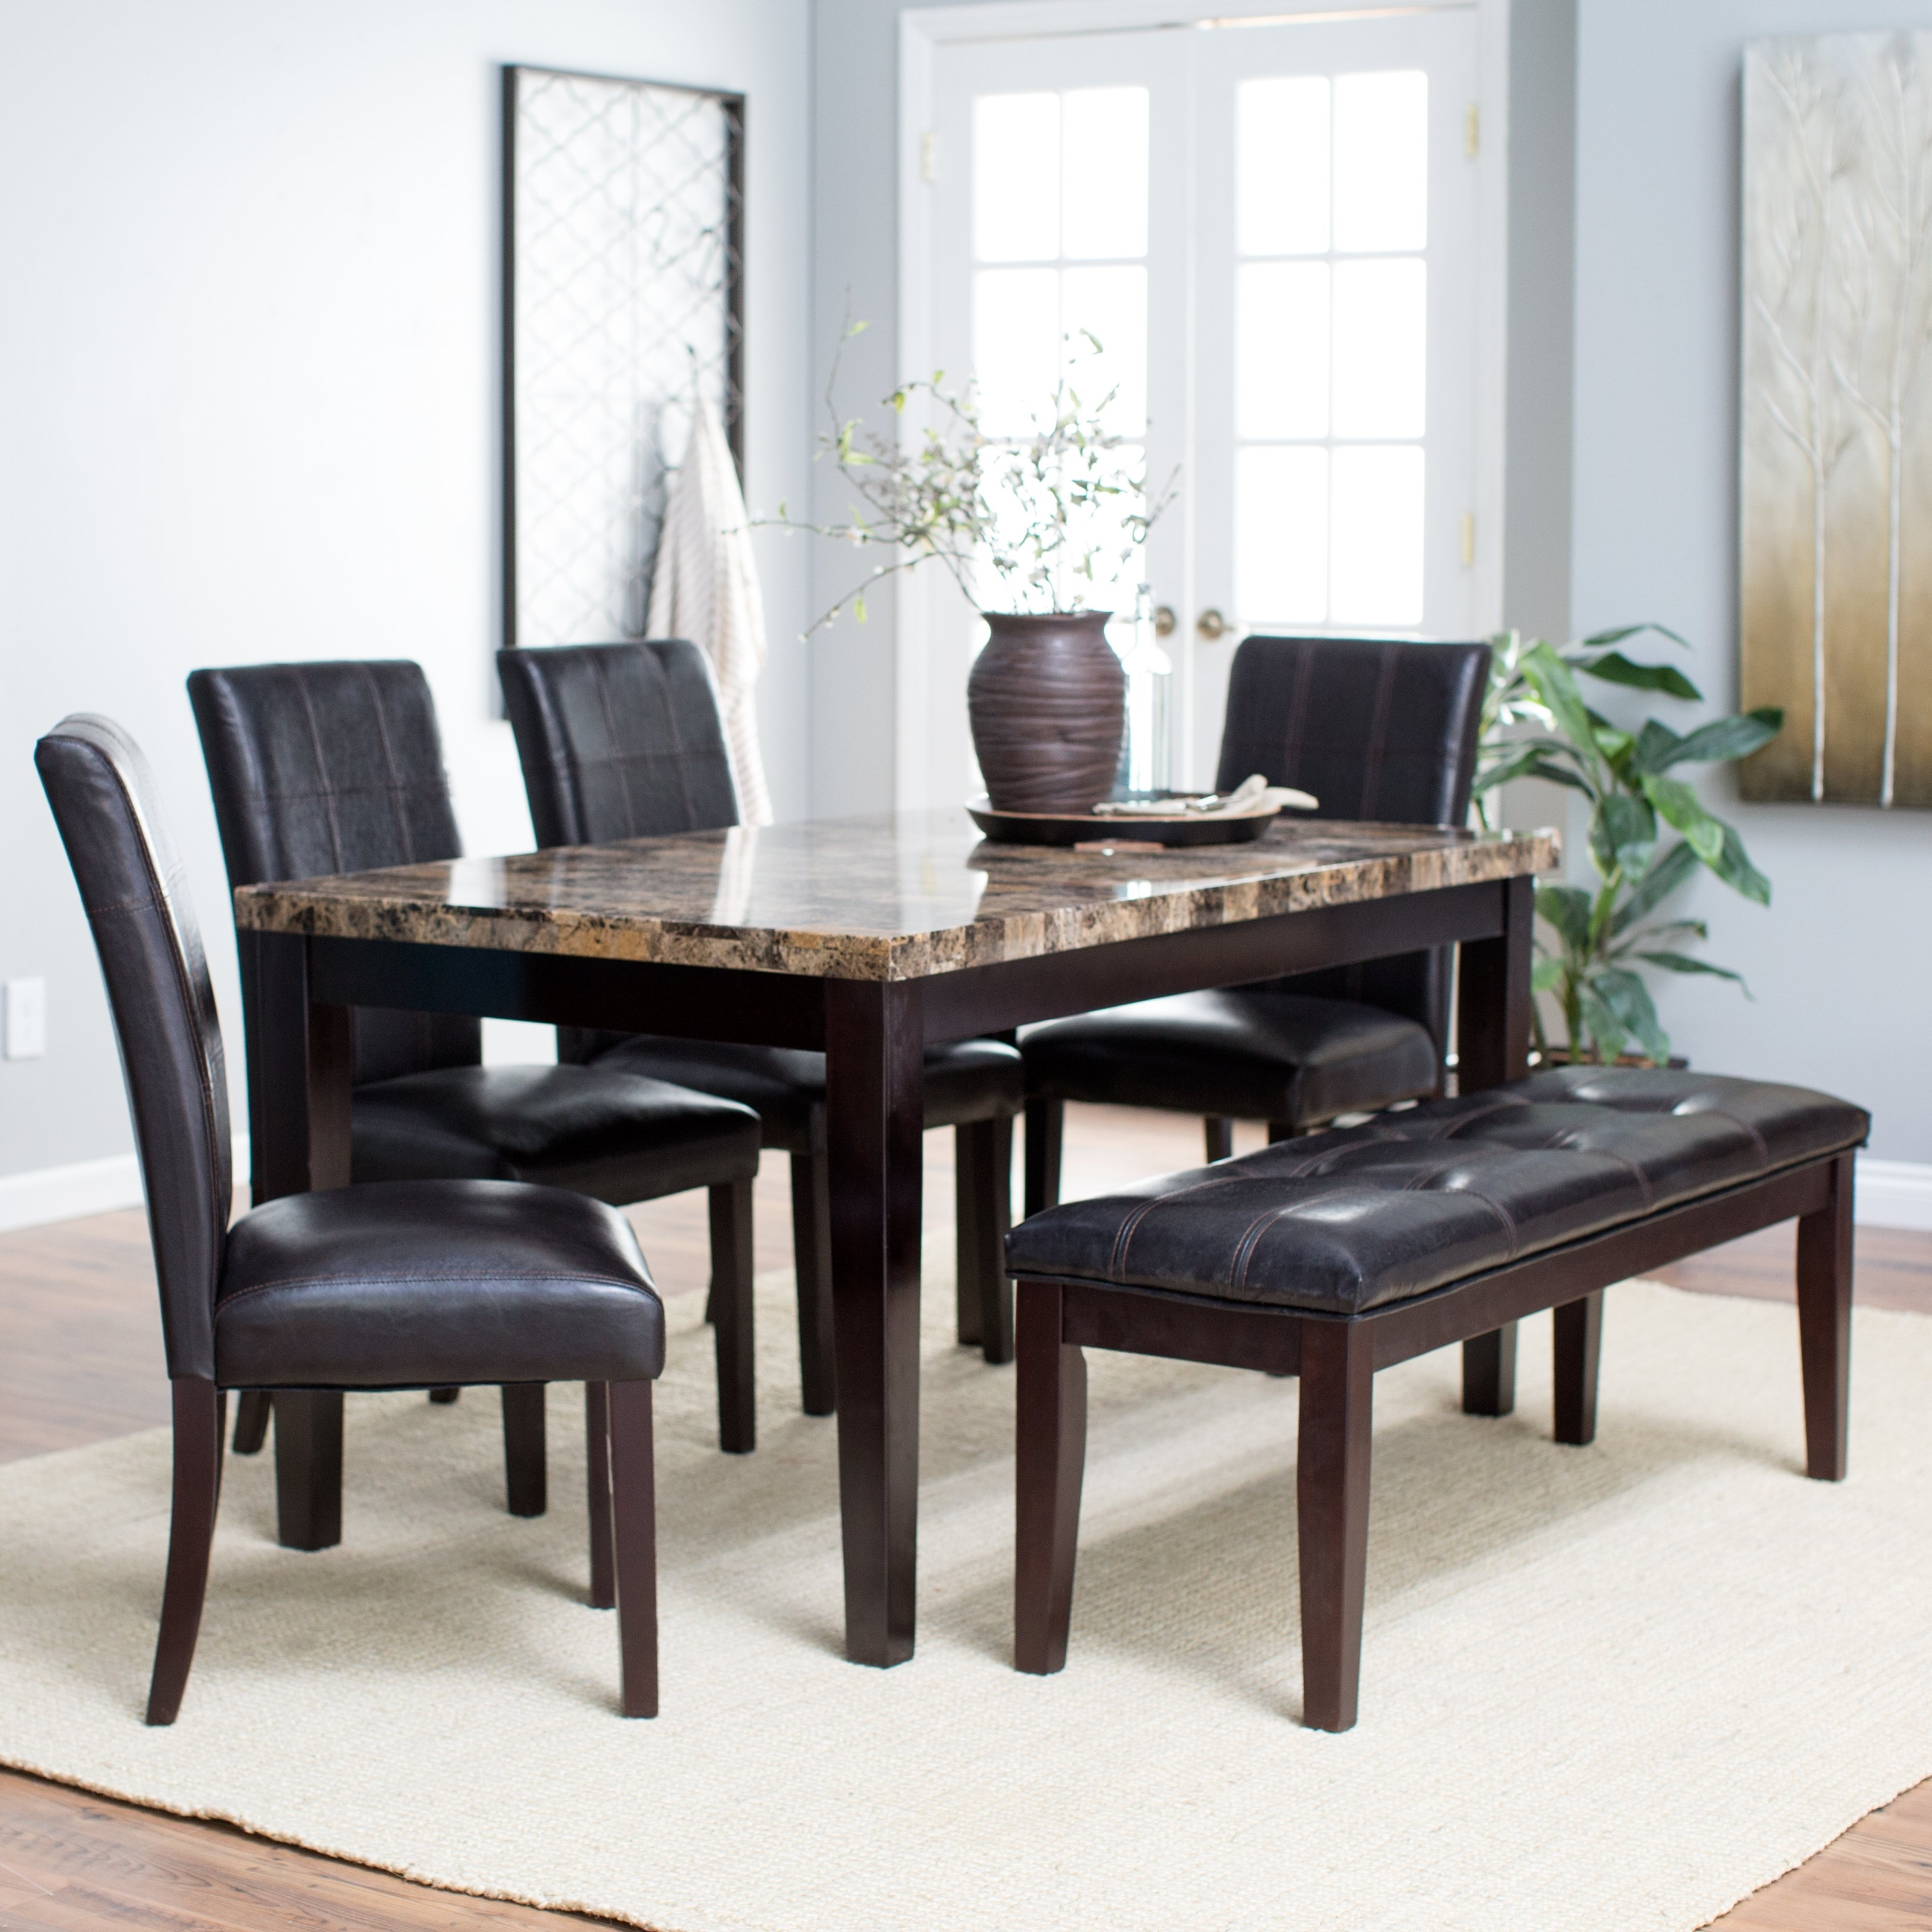 Types Of Dining Table Sets – Pickndecor In Best And Newest Dining Tables Sets (View 14 of 25)